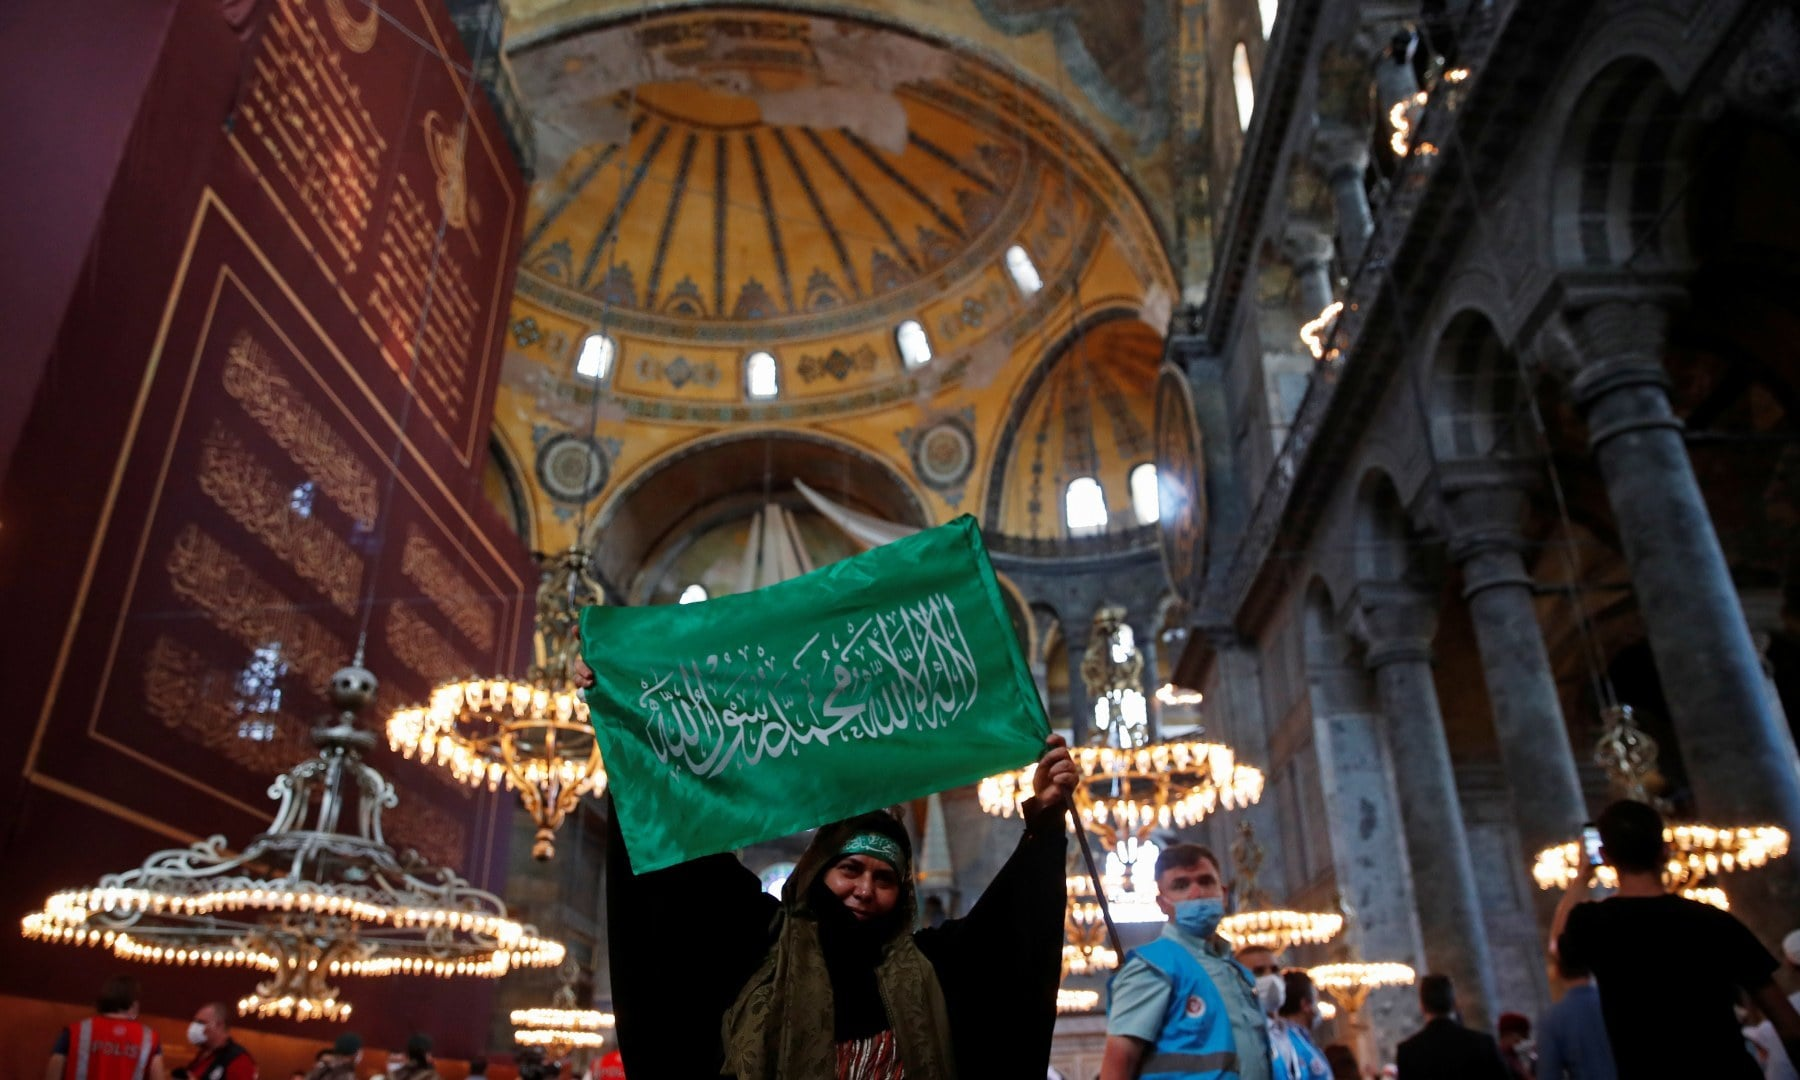 A woman holds a flag as she attends afternoon prayers and visits Hagia Sophia Grand Mosque. — Reuters